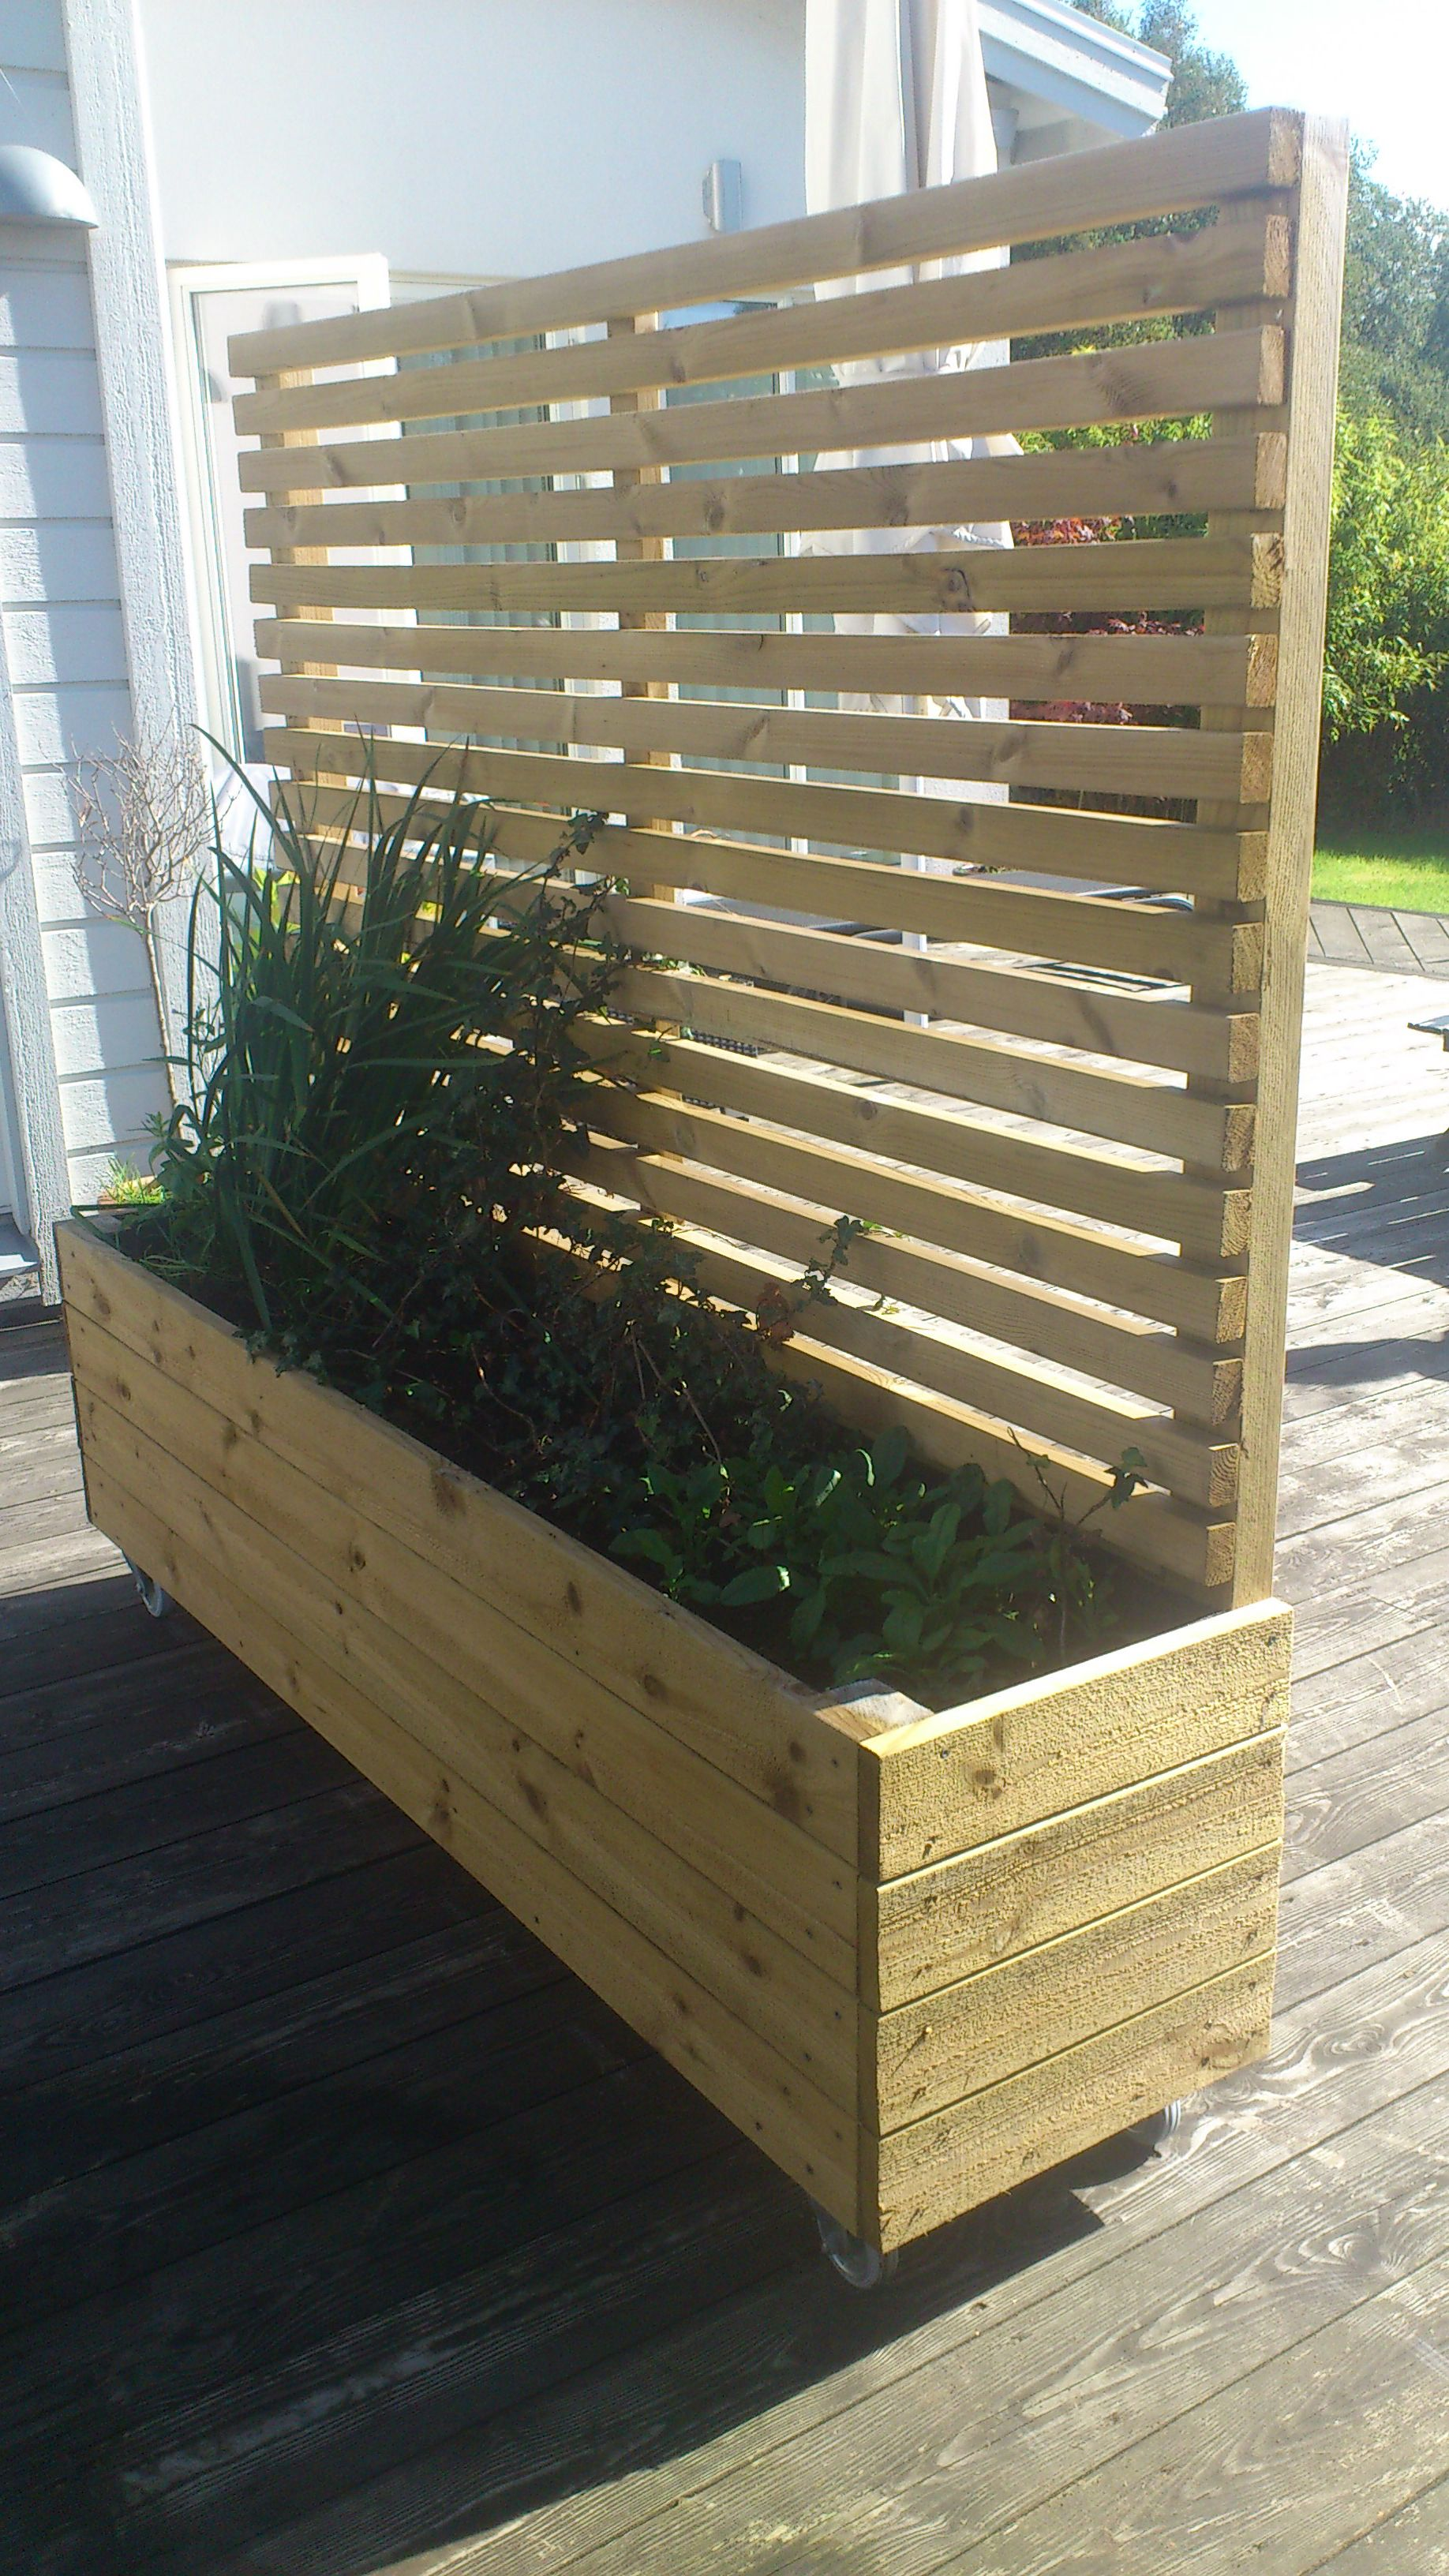 Spalje bloml da vindskydd p hjul diy mina hemmaprojekt for Privacy planters for decks